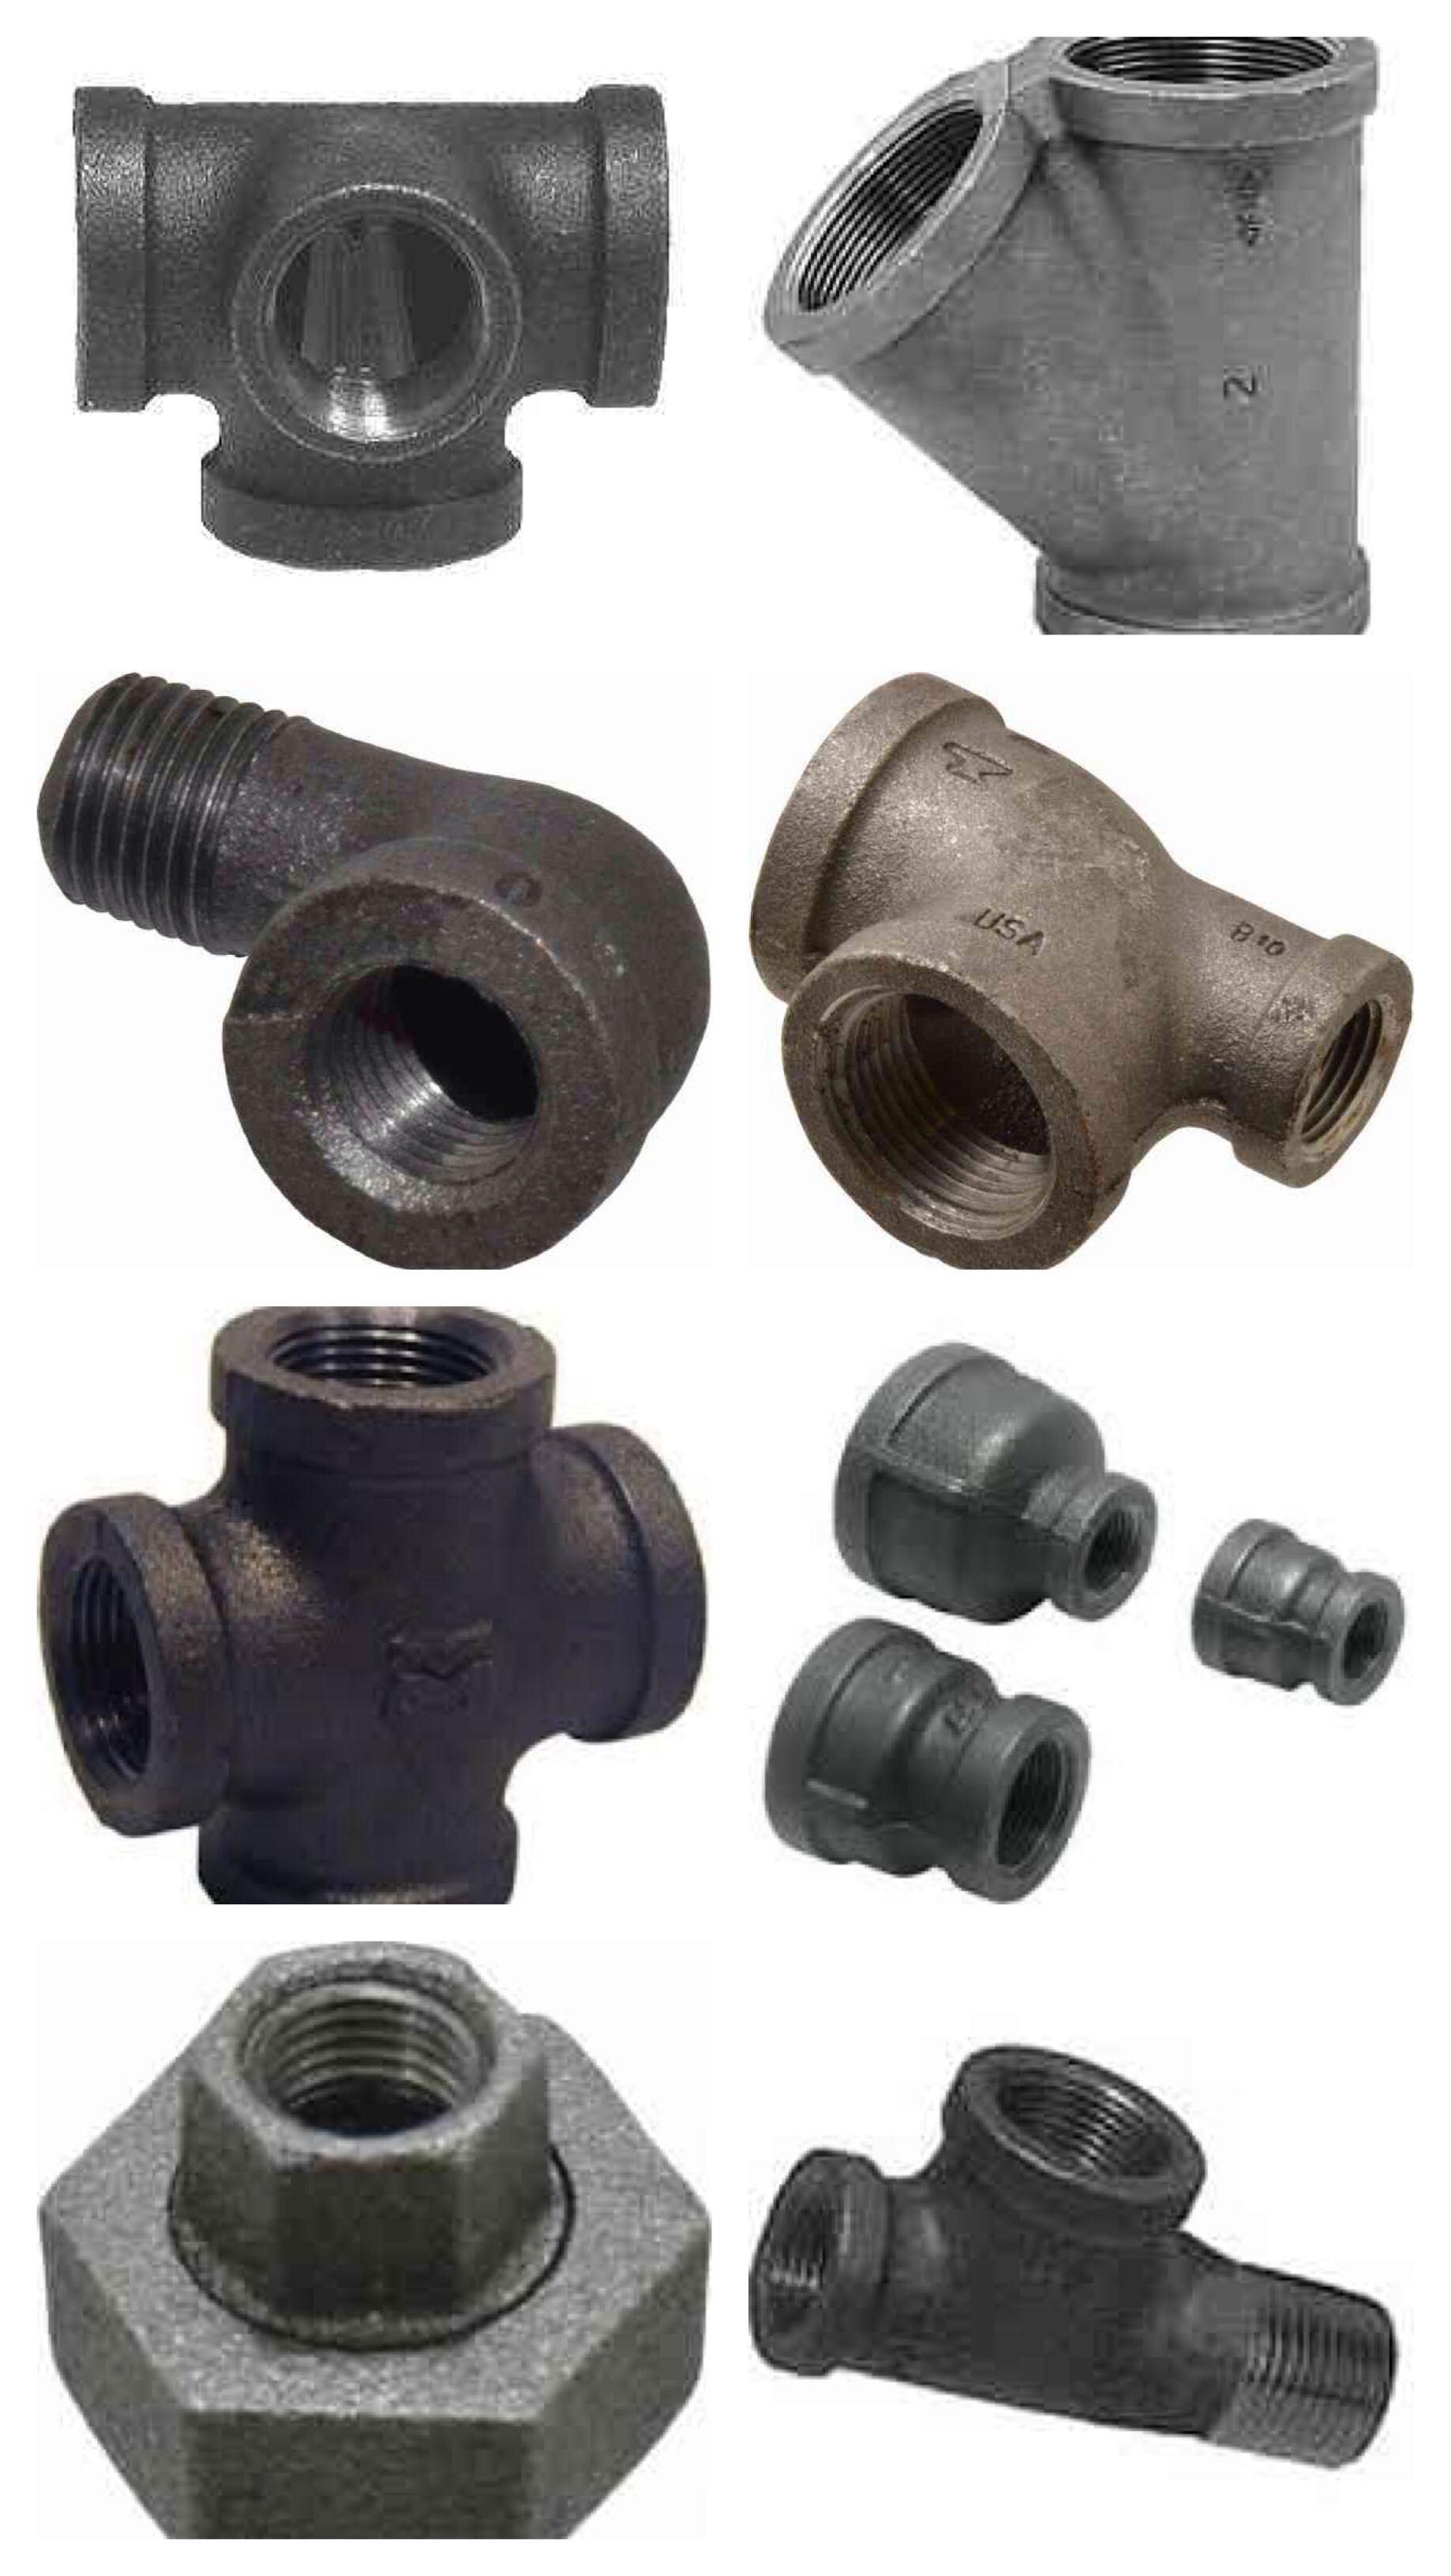 Some interesting fittings you might not find at home depot these